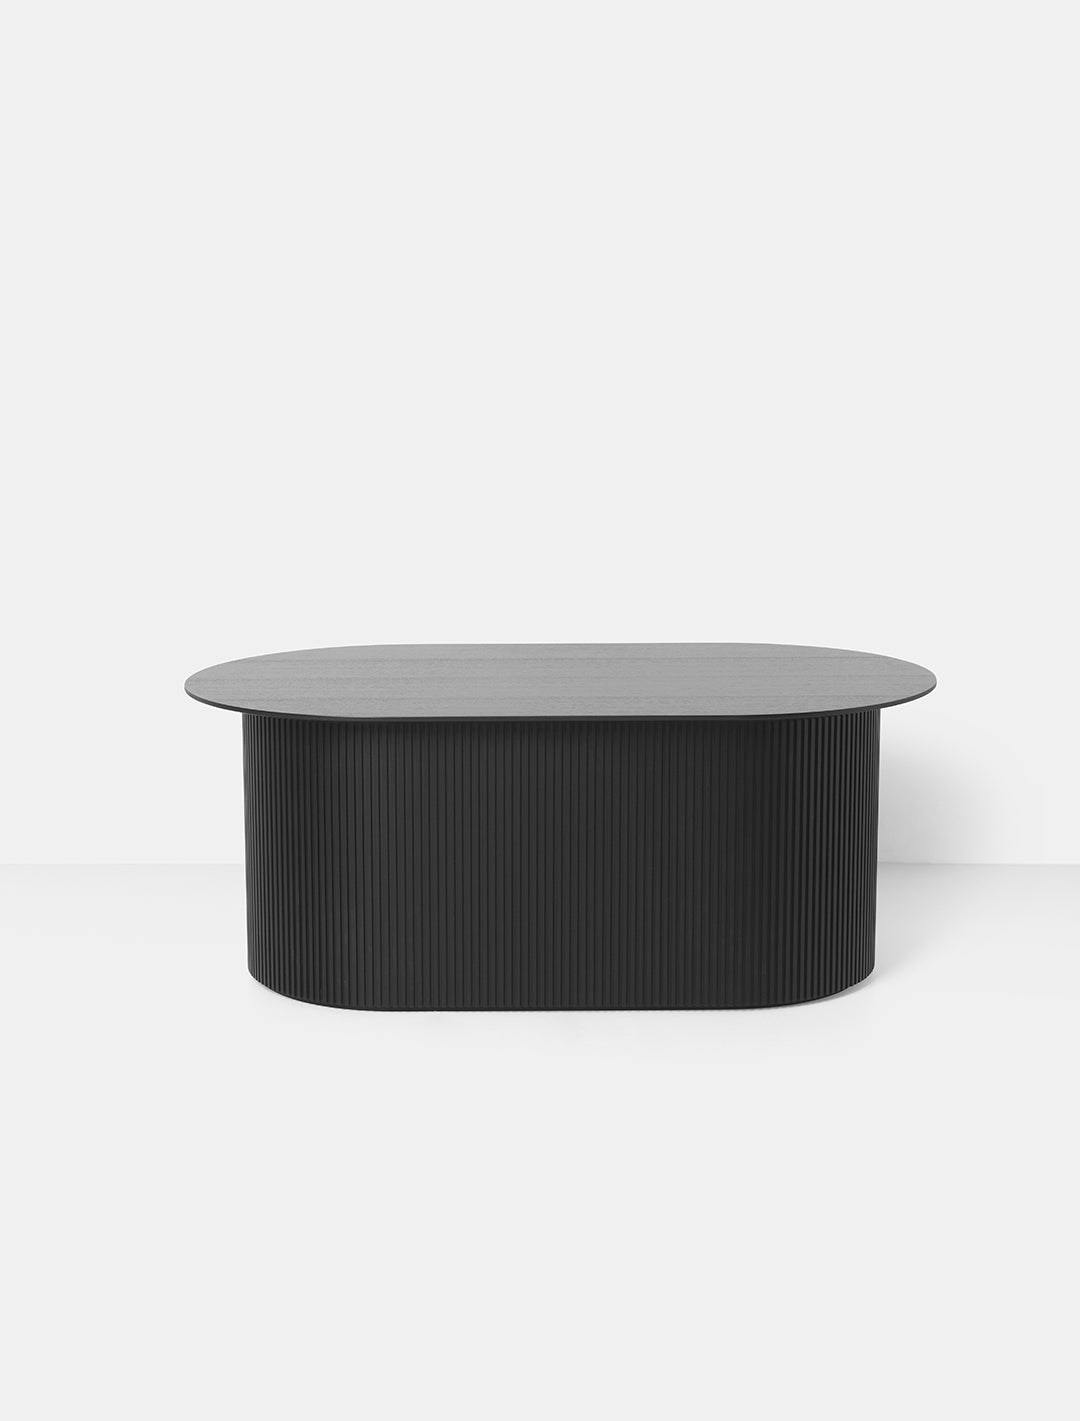 Podia Table Oval in Black design by Ferm Living